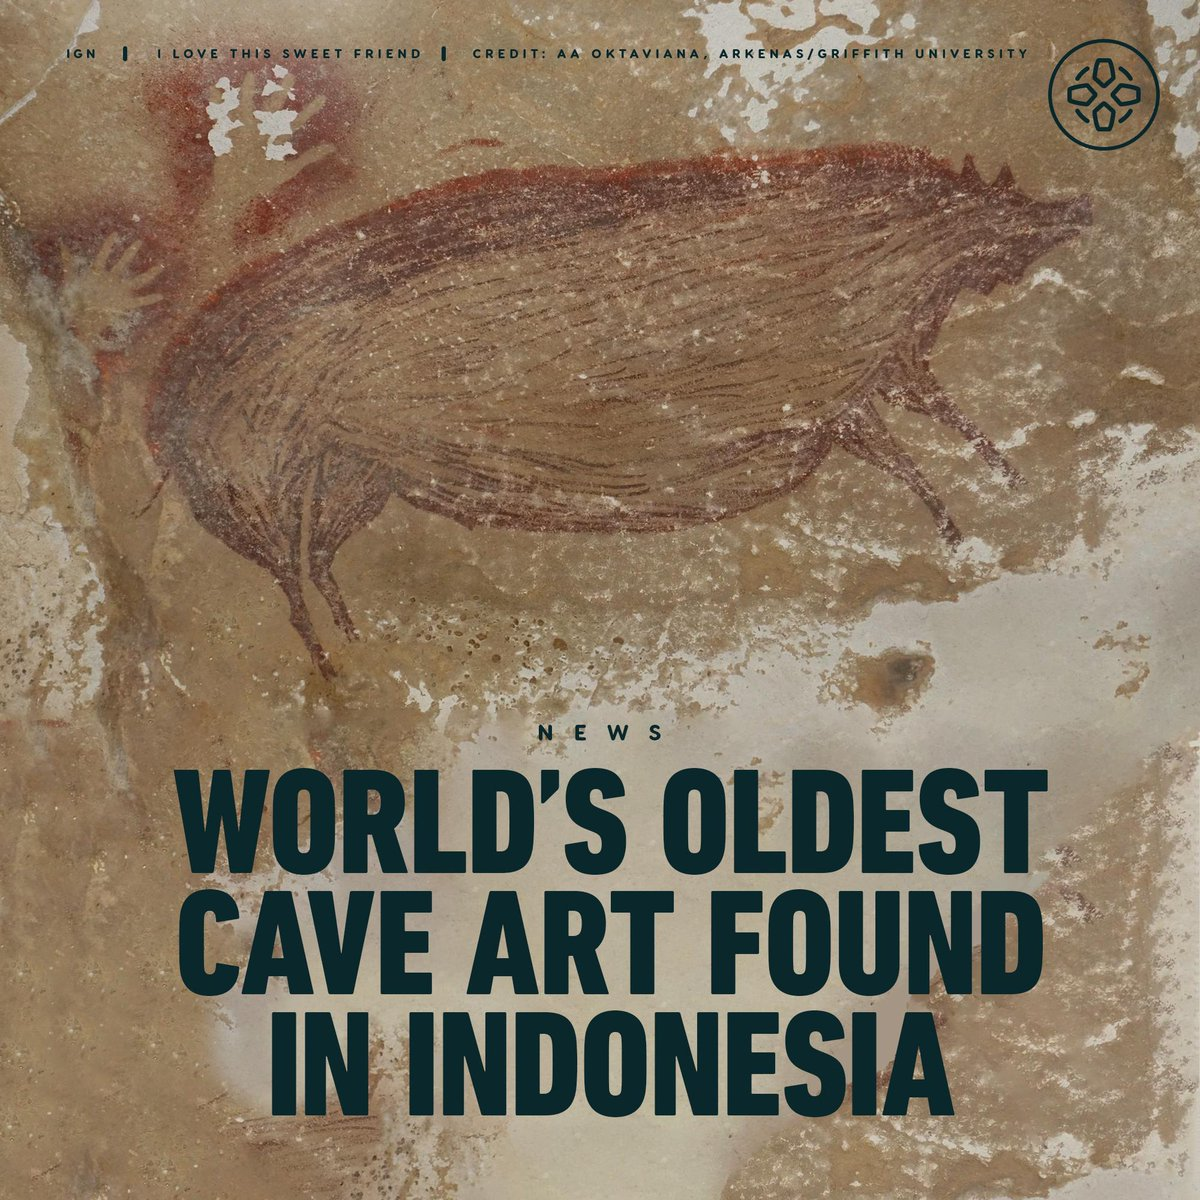 Archeologists discovered what they believe to be the world's oldest-known cave art in Indonesia: a 45,500-year-old painting of a wild pig. 🐖